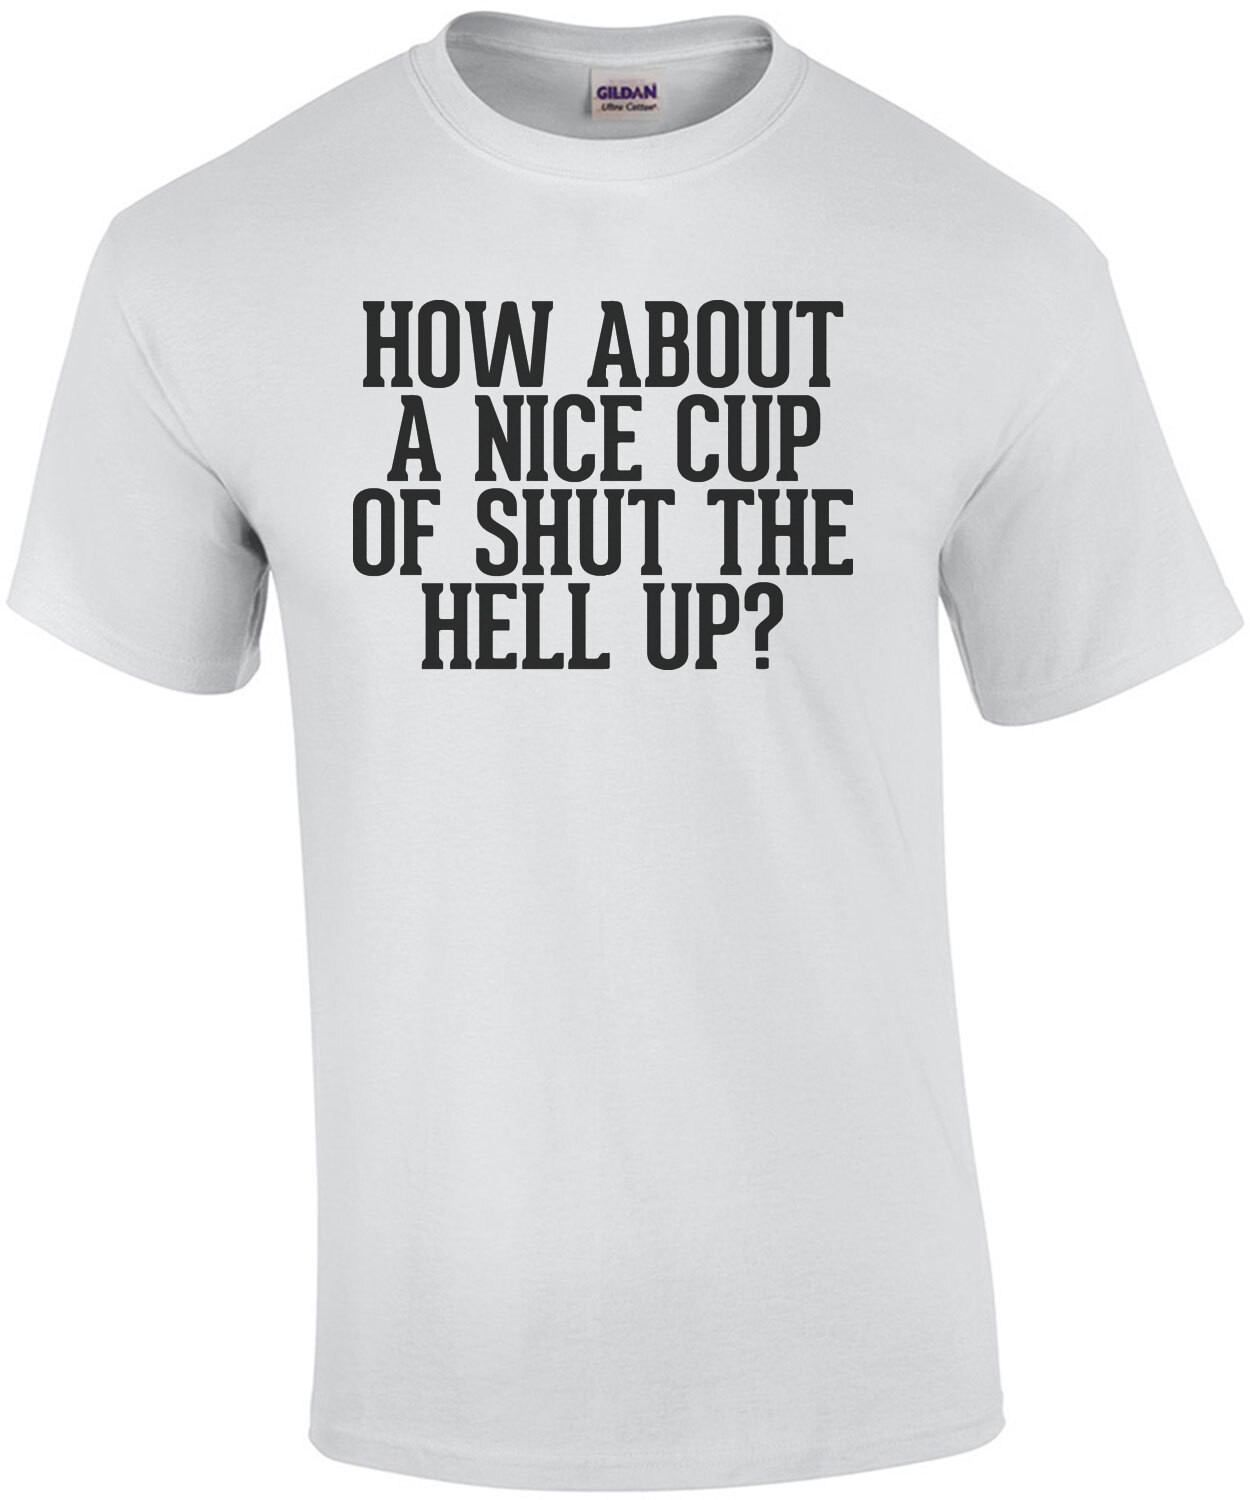 How about a nice cup of shut the hell up? funny insult t-shirt